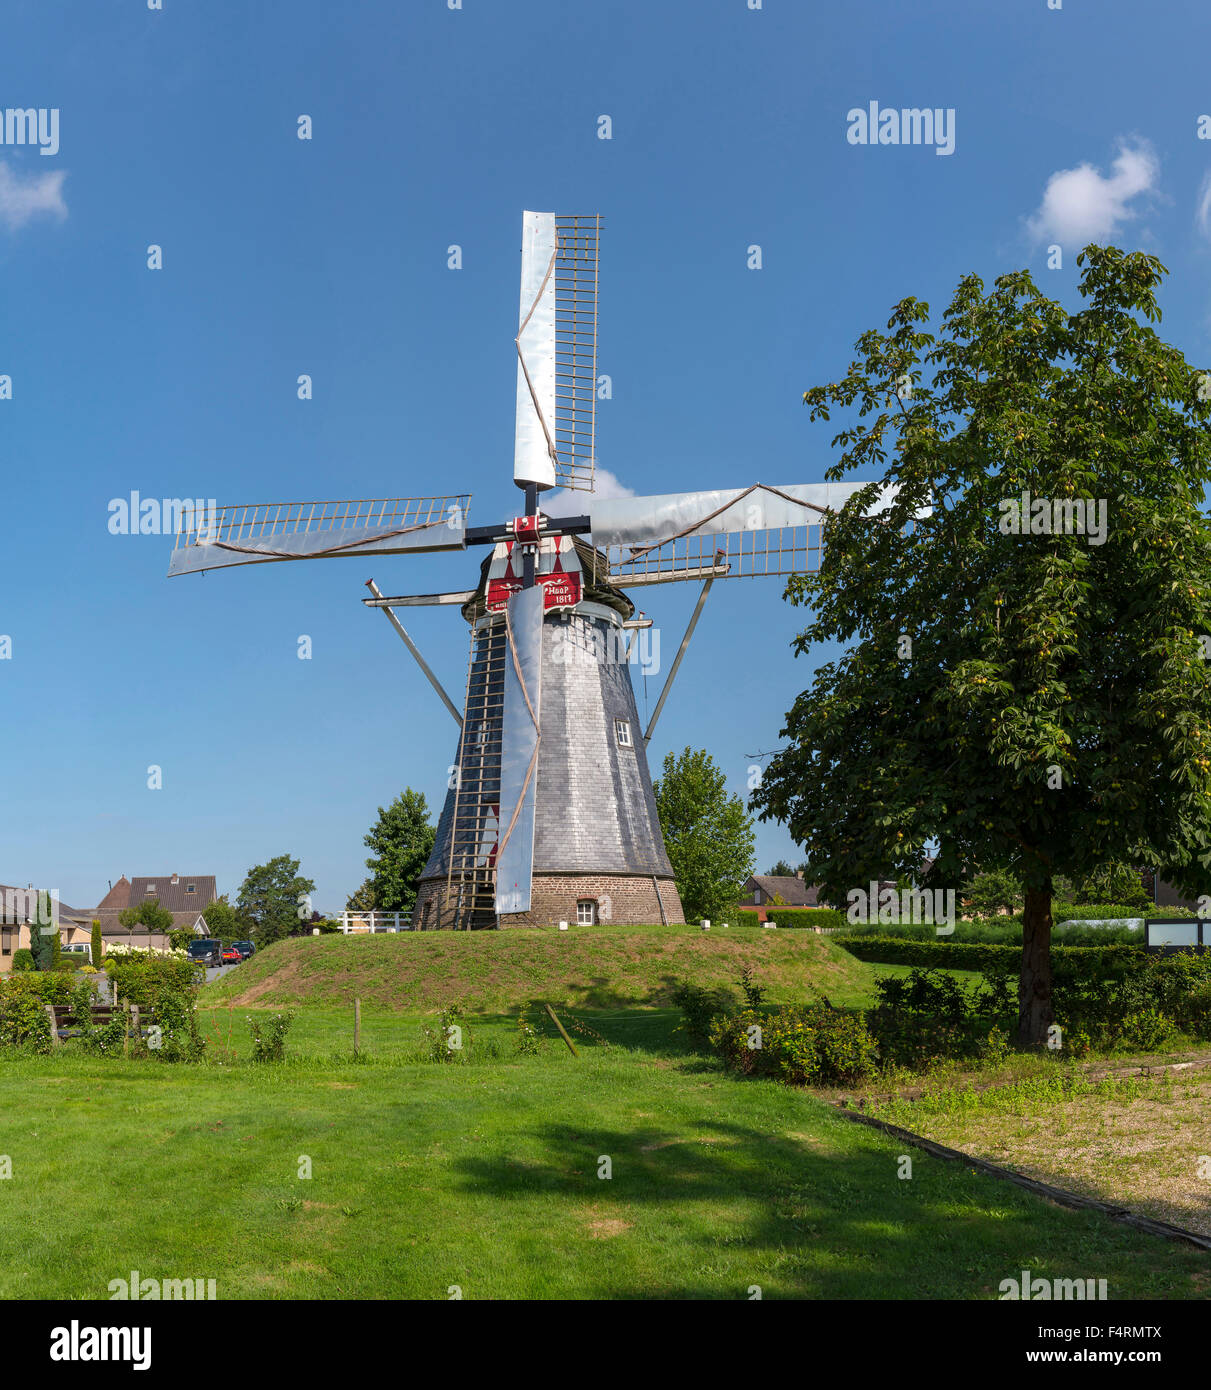 Netherlands, Europe, Holland, Horn, Limburg, windmill, field, meadow, trees, summer, Hope - Stock Image